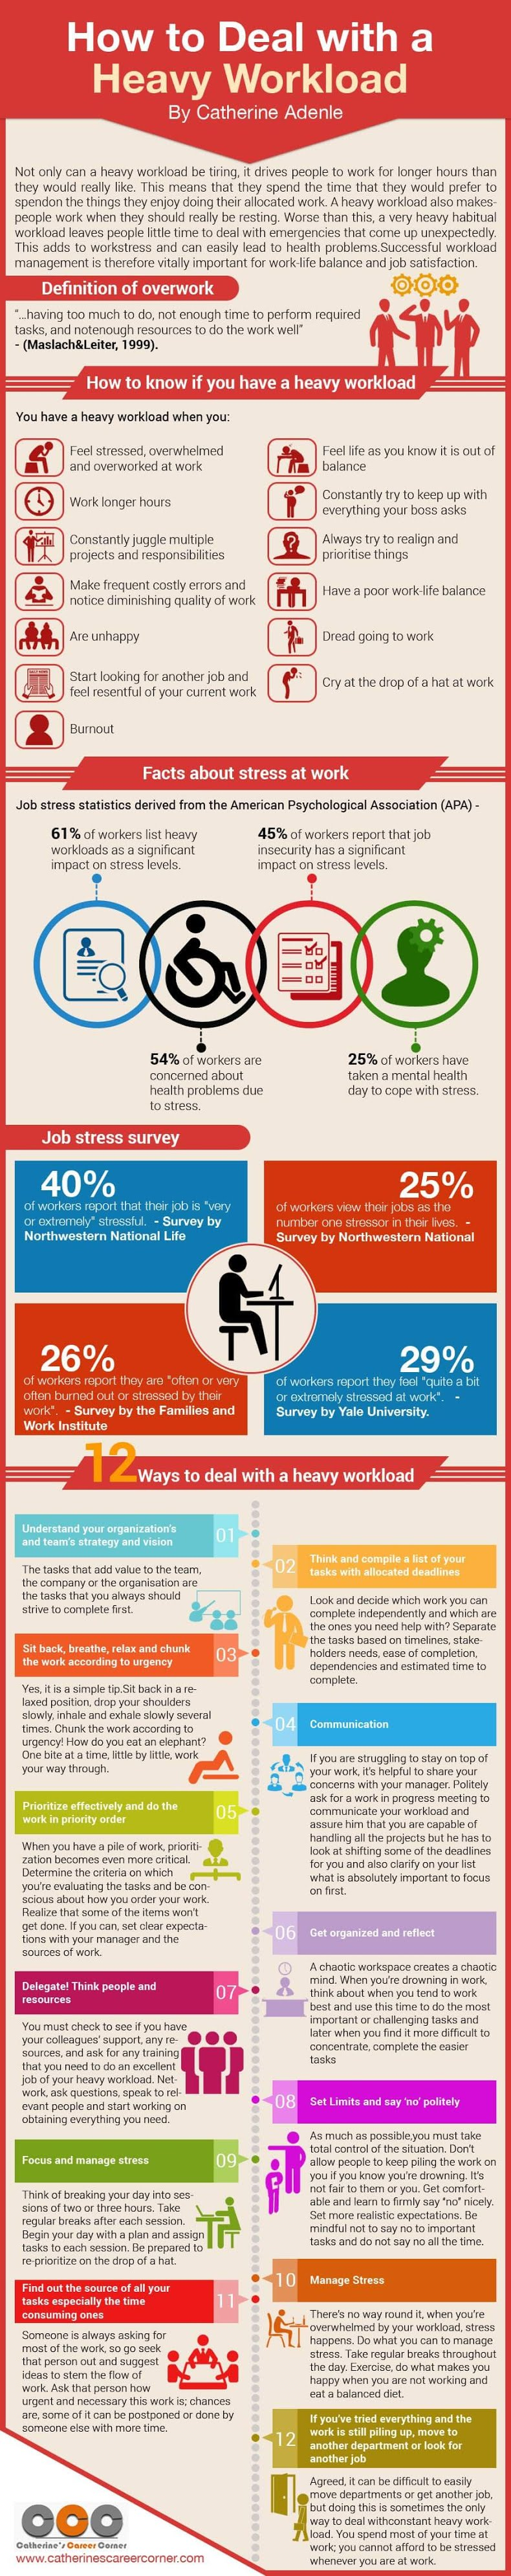 How to Deal with a Heavy Workload #infographic